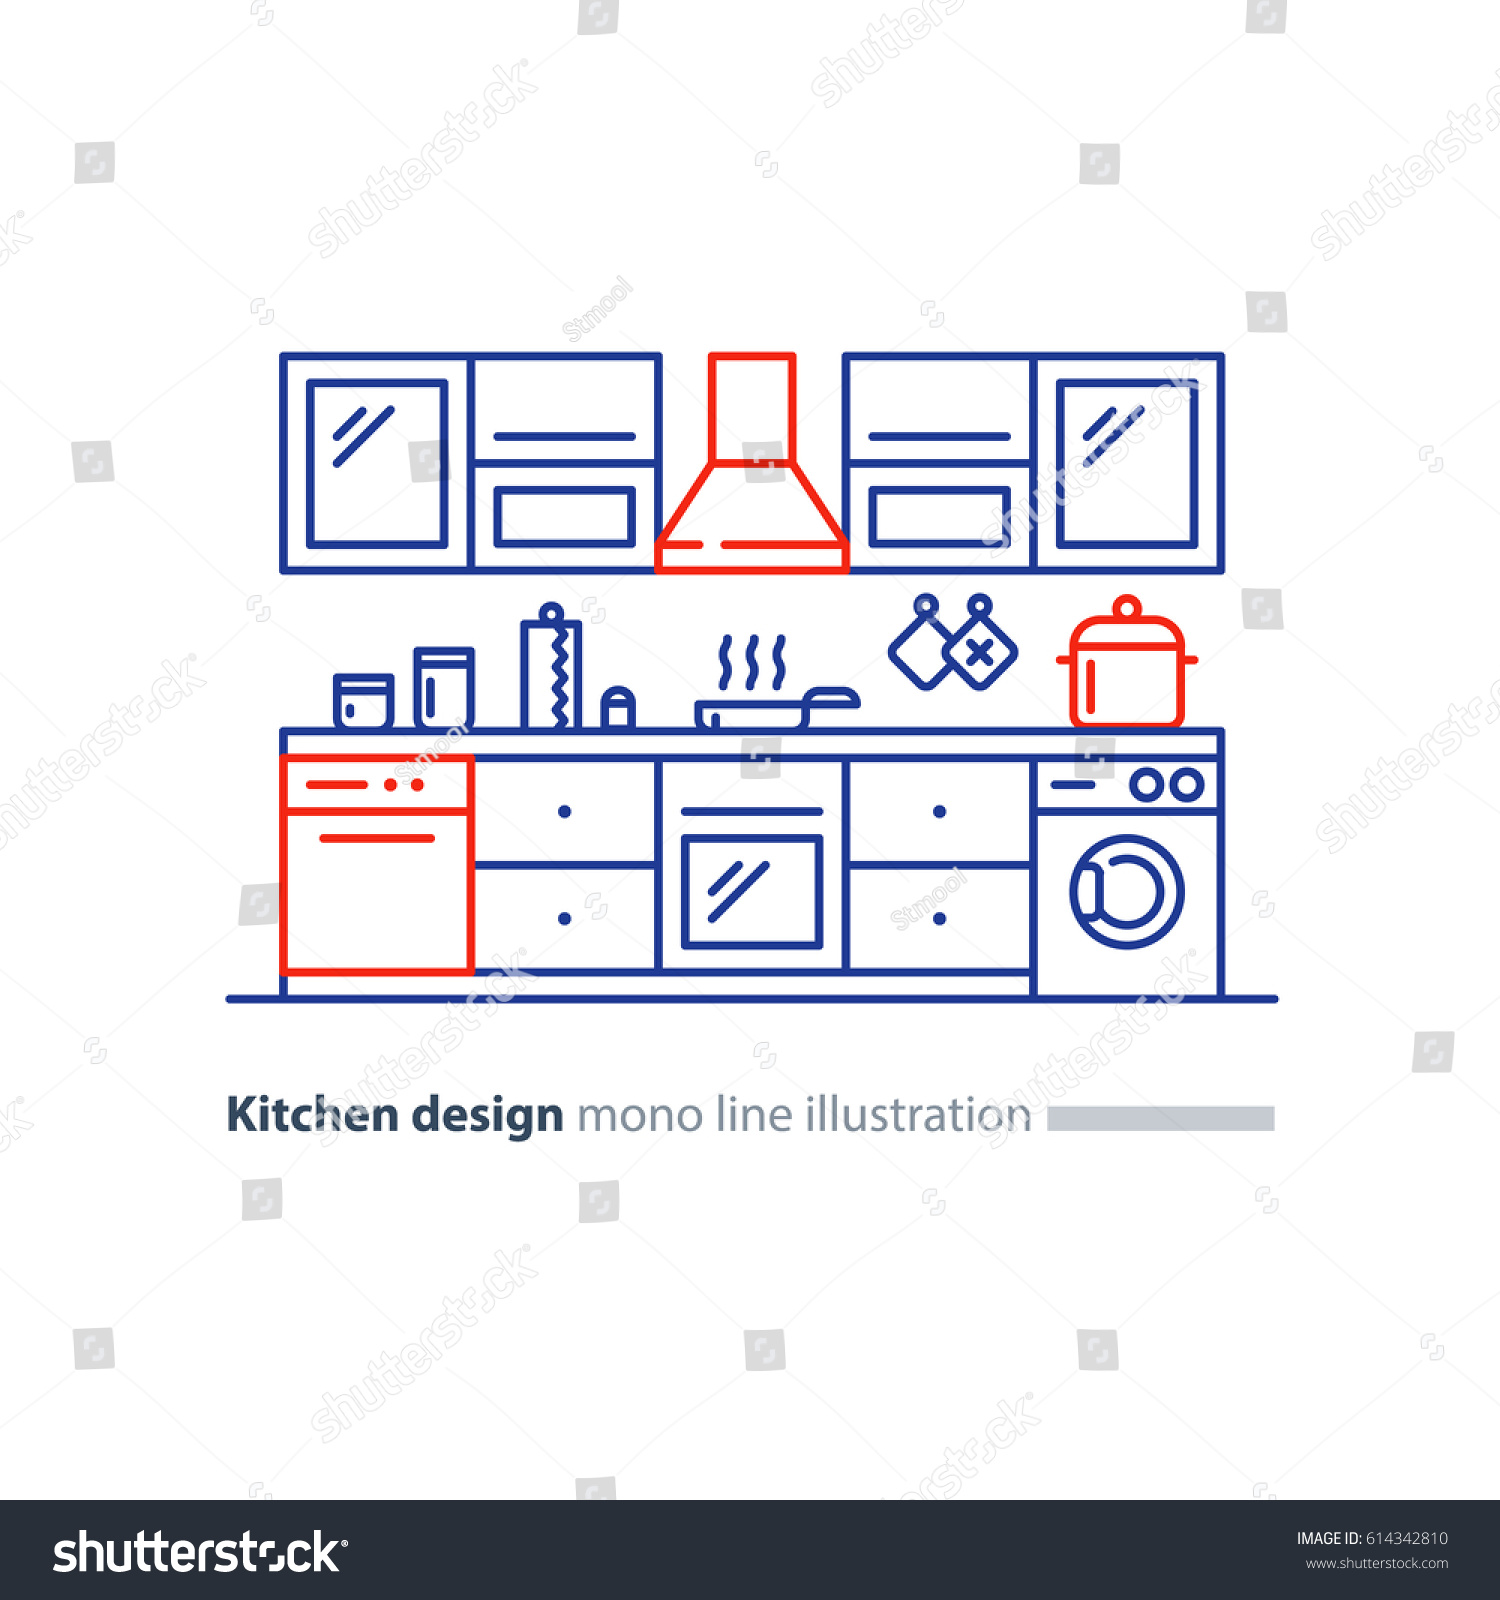 Kitchen project design blueprint combination idea vectores en stock kitchen project design blueprint combination idea home furniture arrangement plan vector malvernweather Gallery